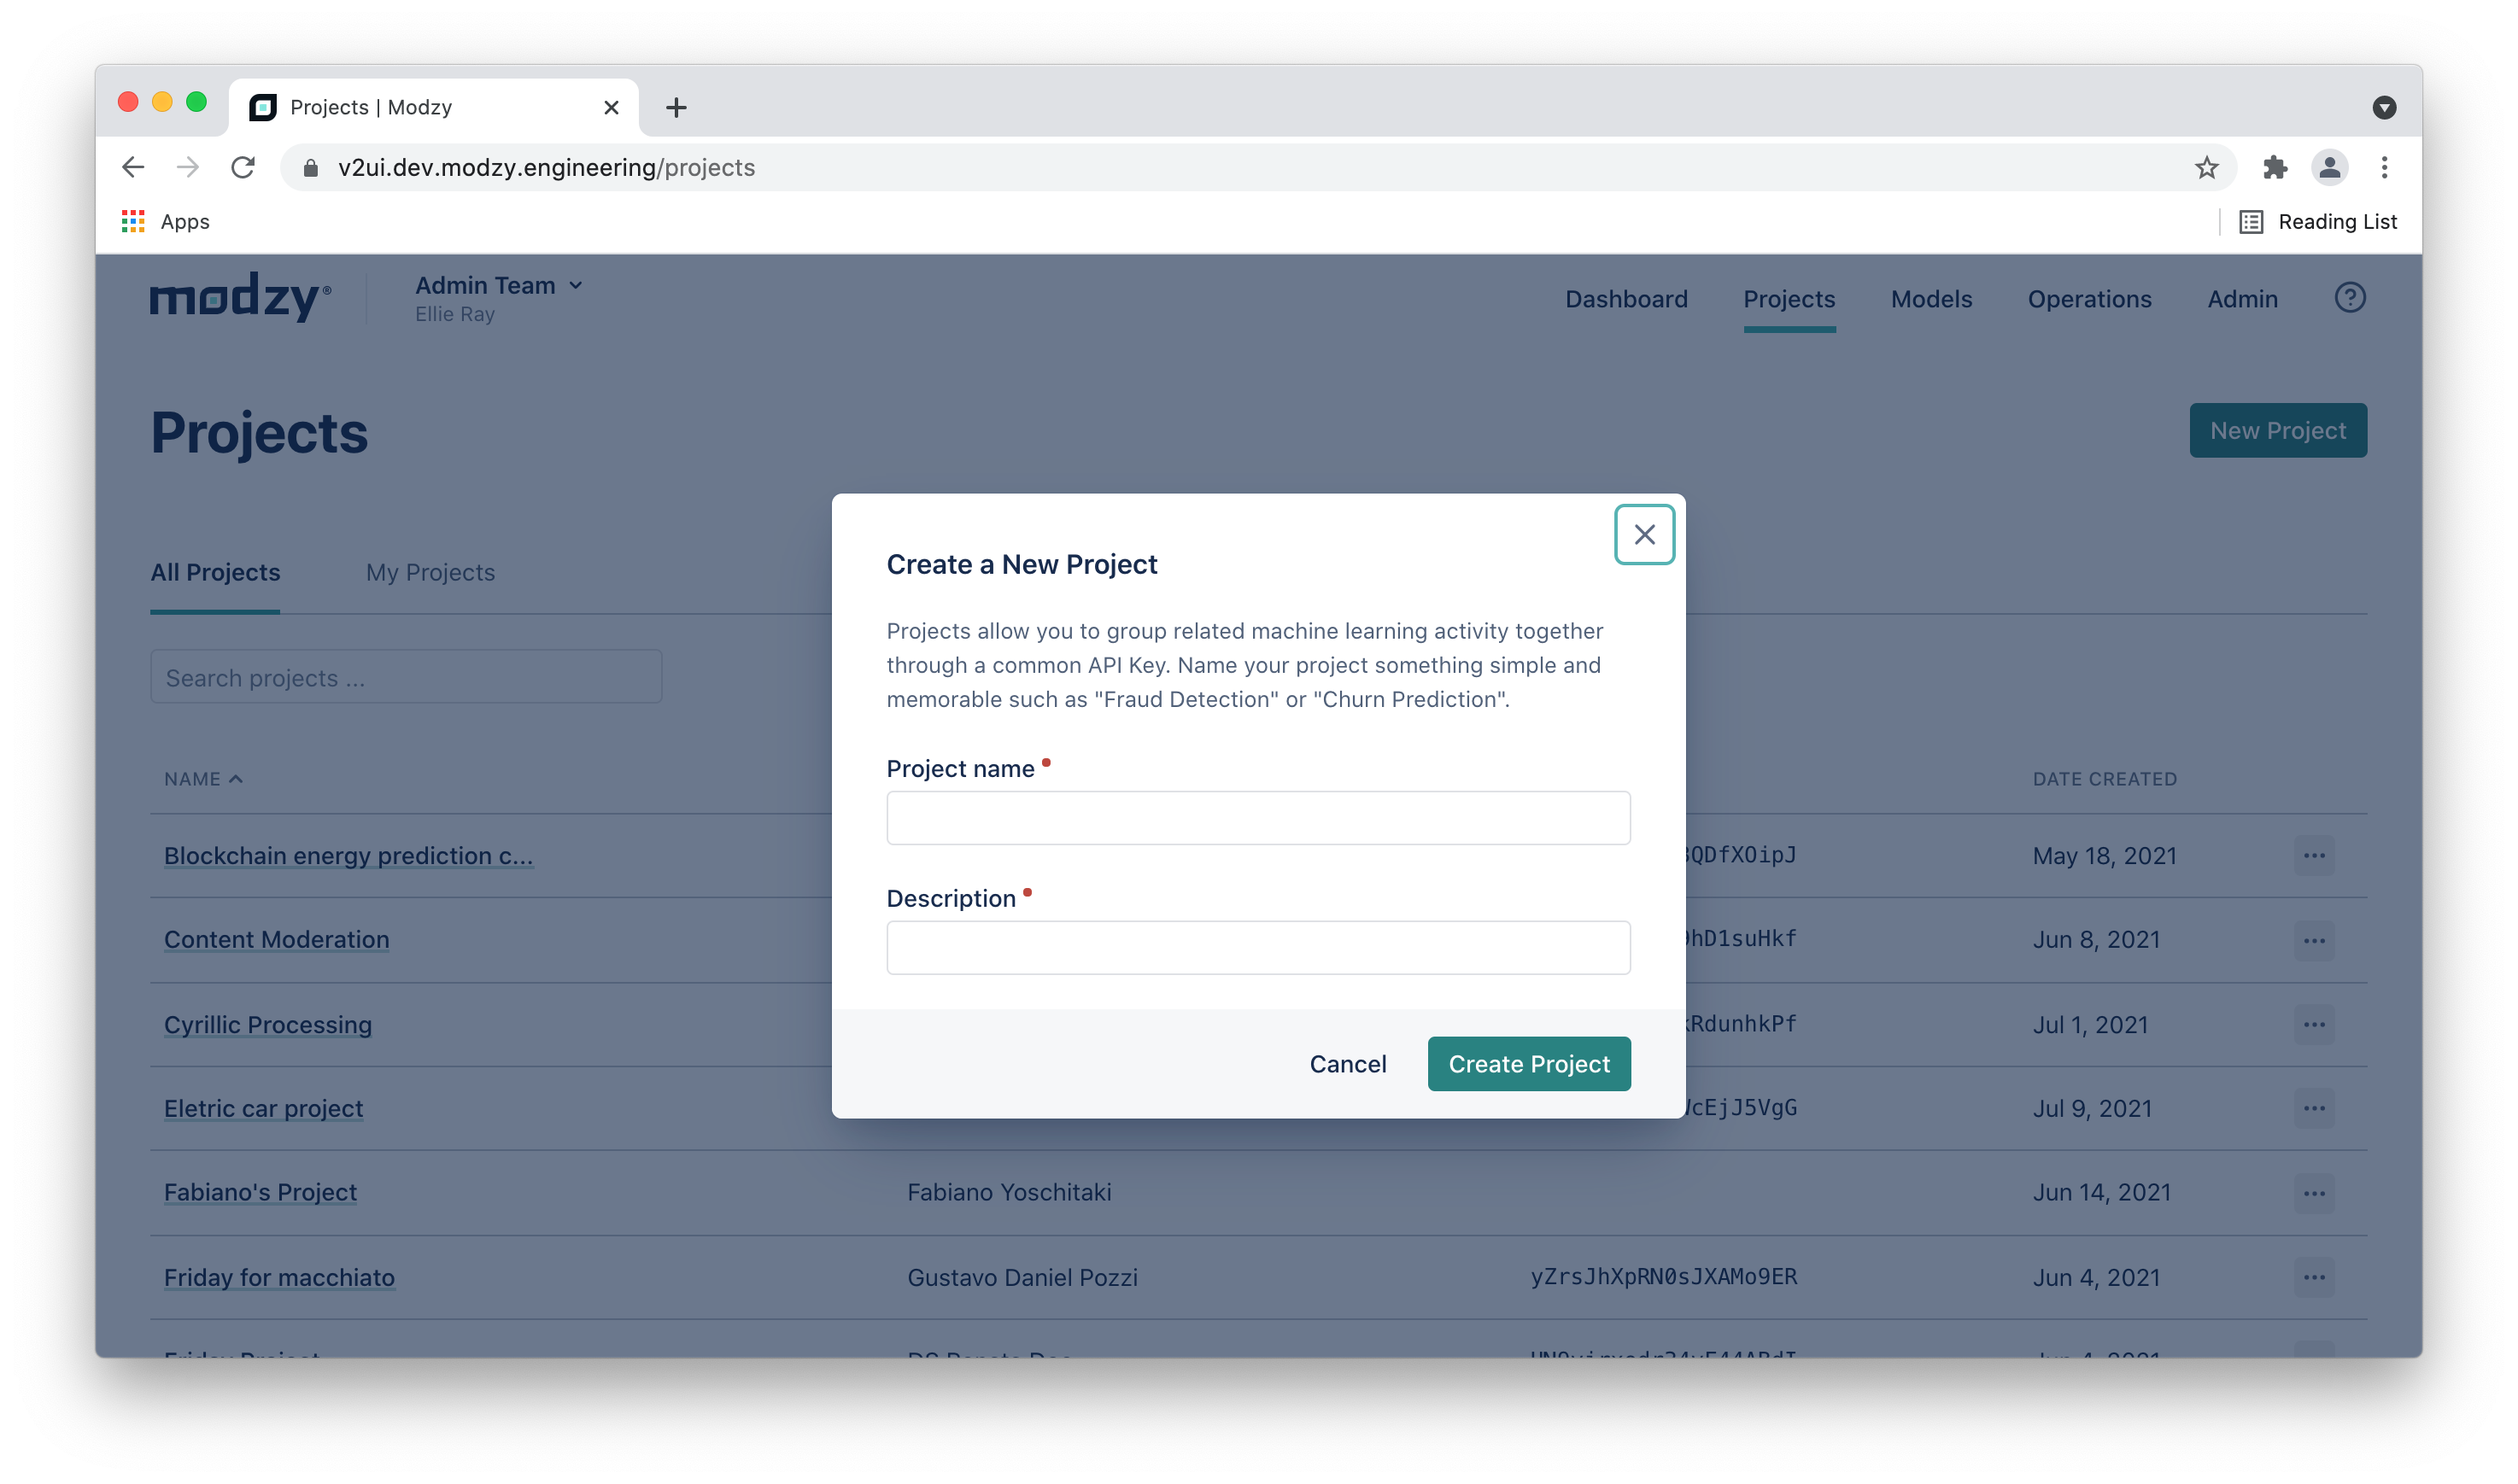 Create a New Project Modal